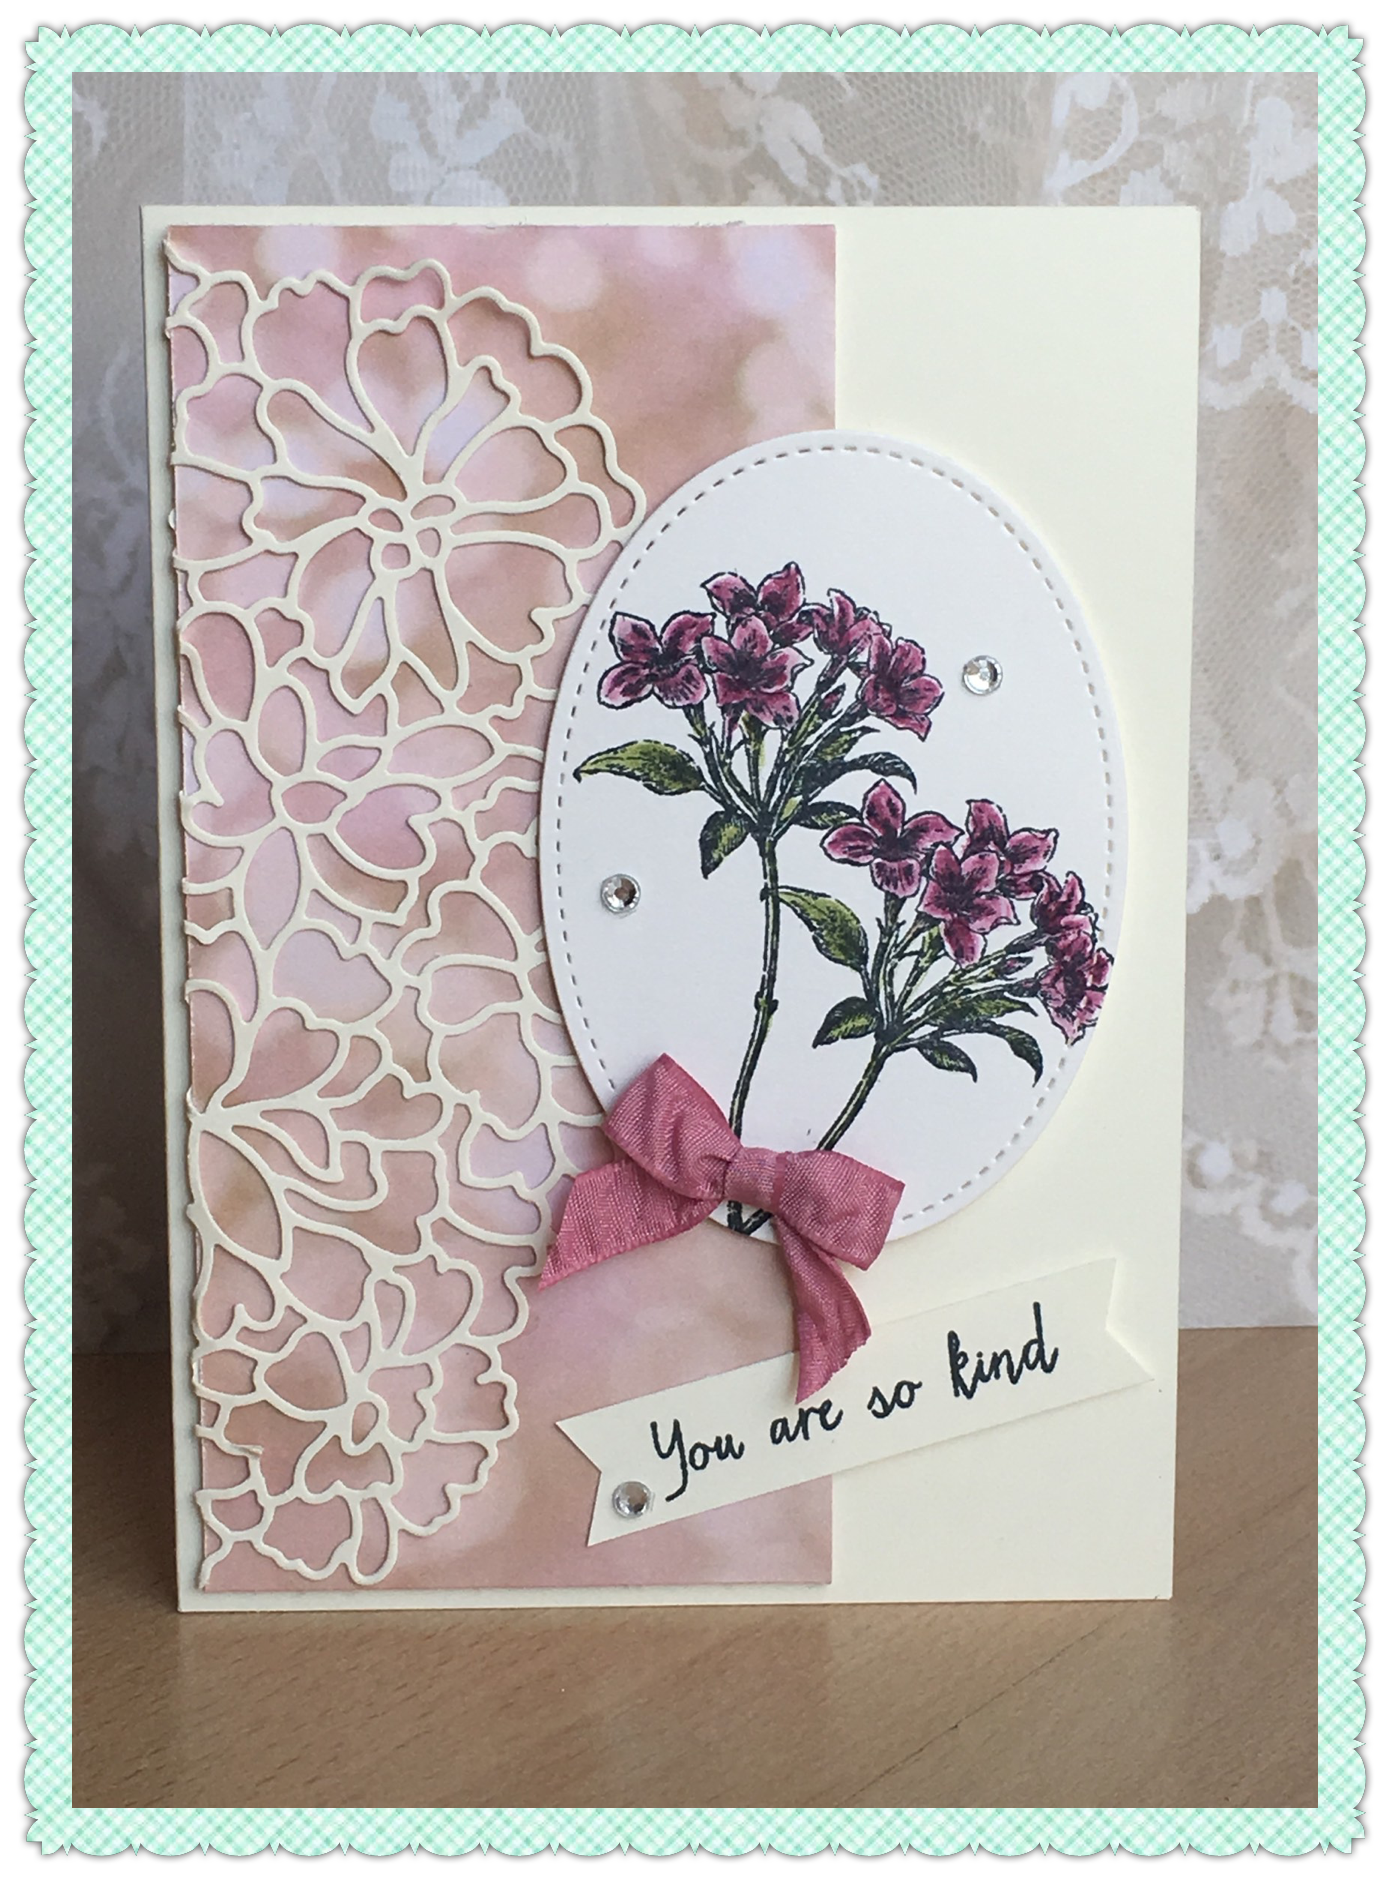 All Details You Need To Know About Home Decoration In 2020 Cards Handmade Flower Cards Floral Cards